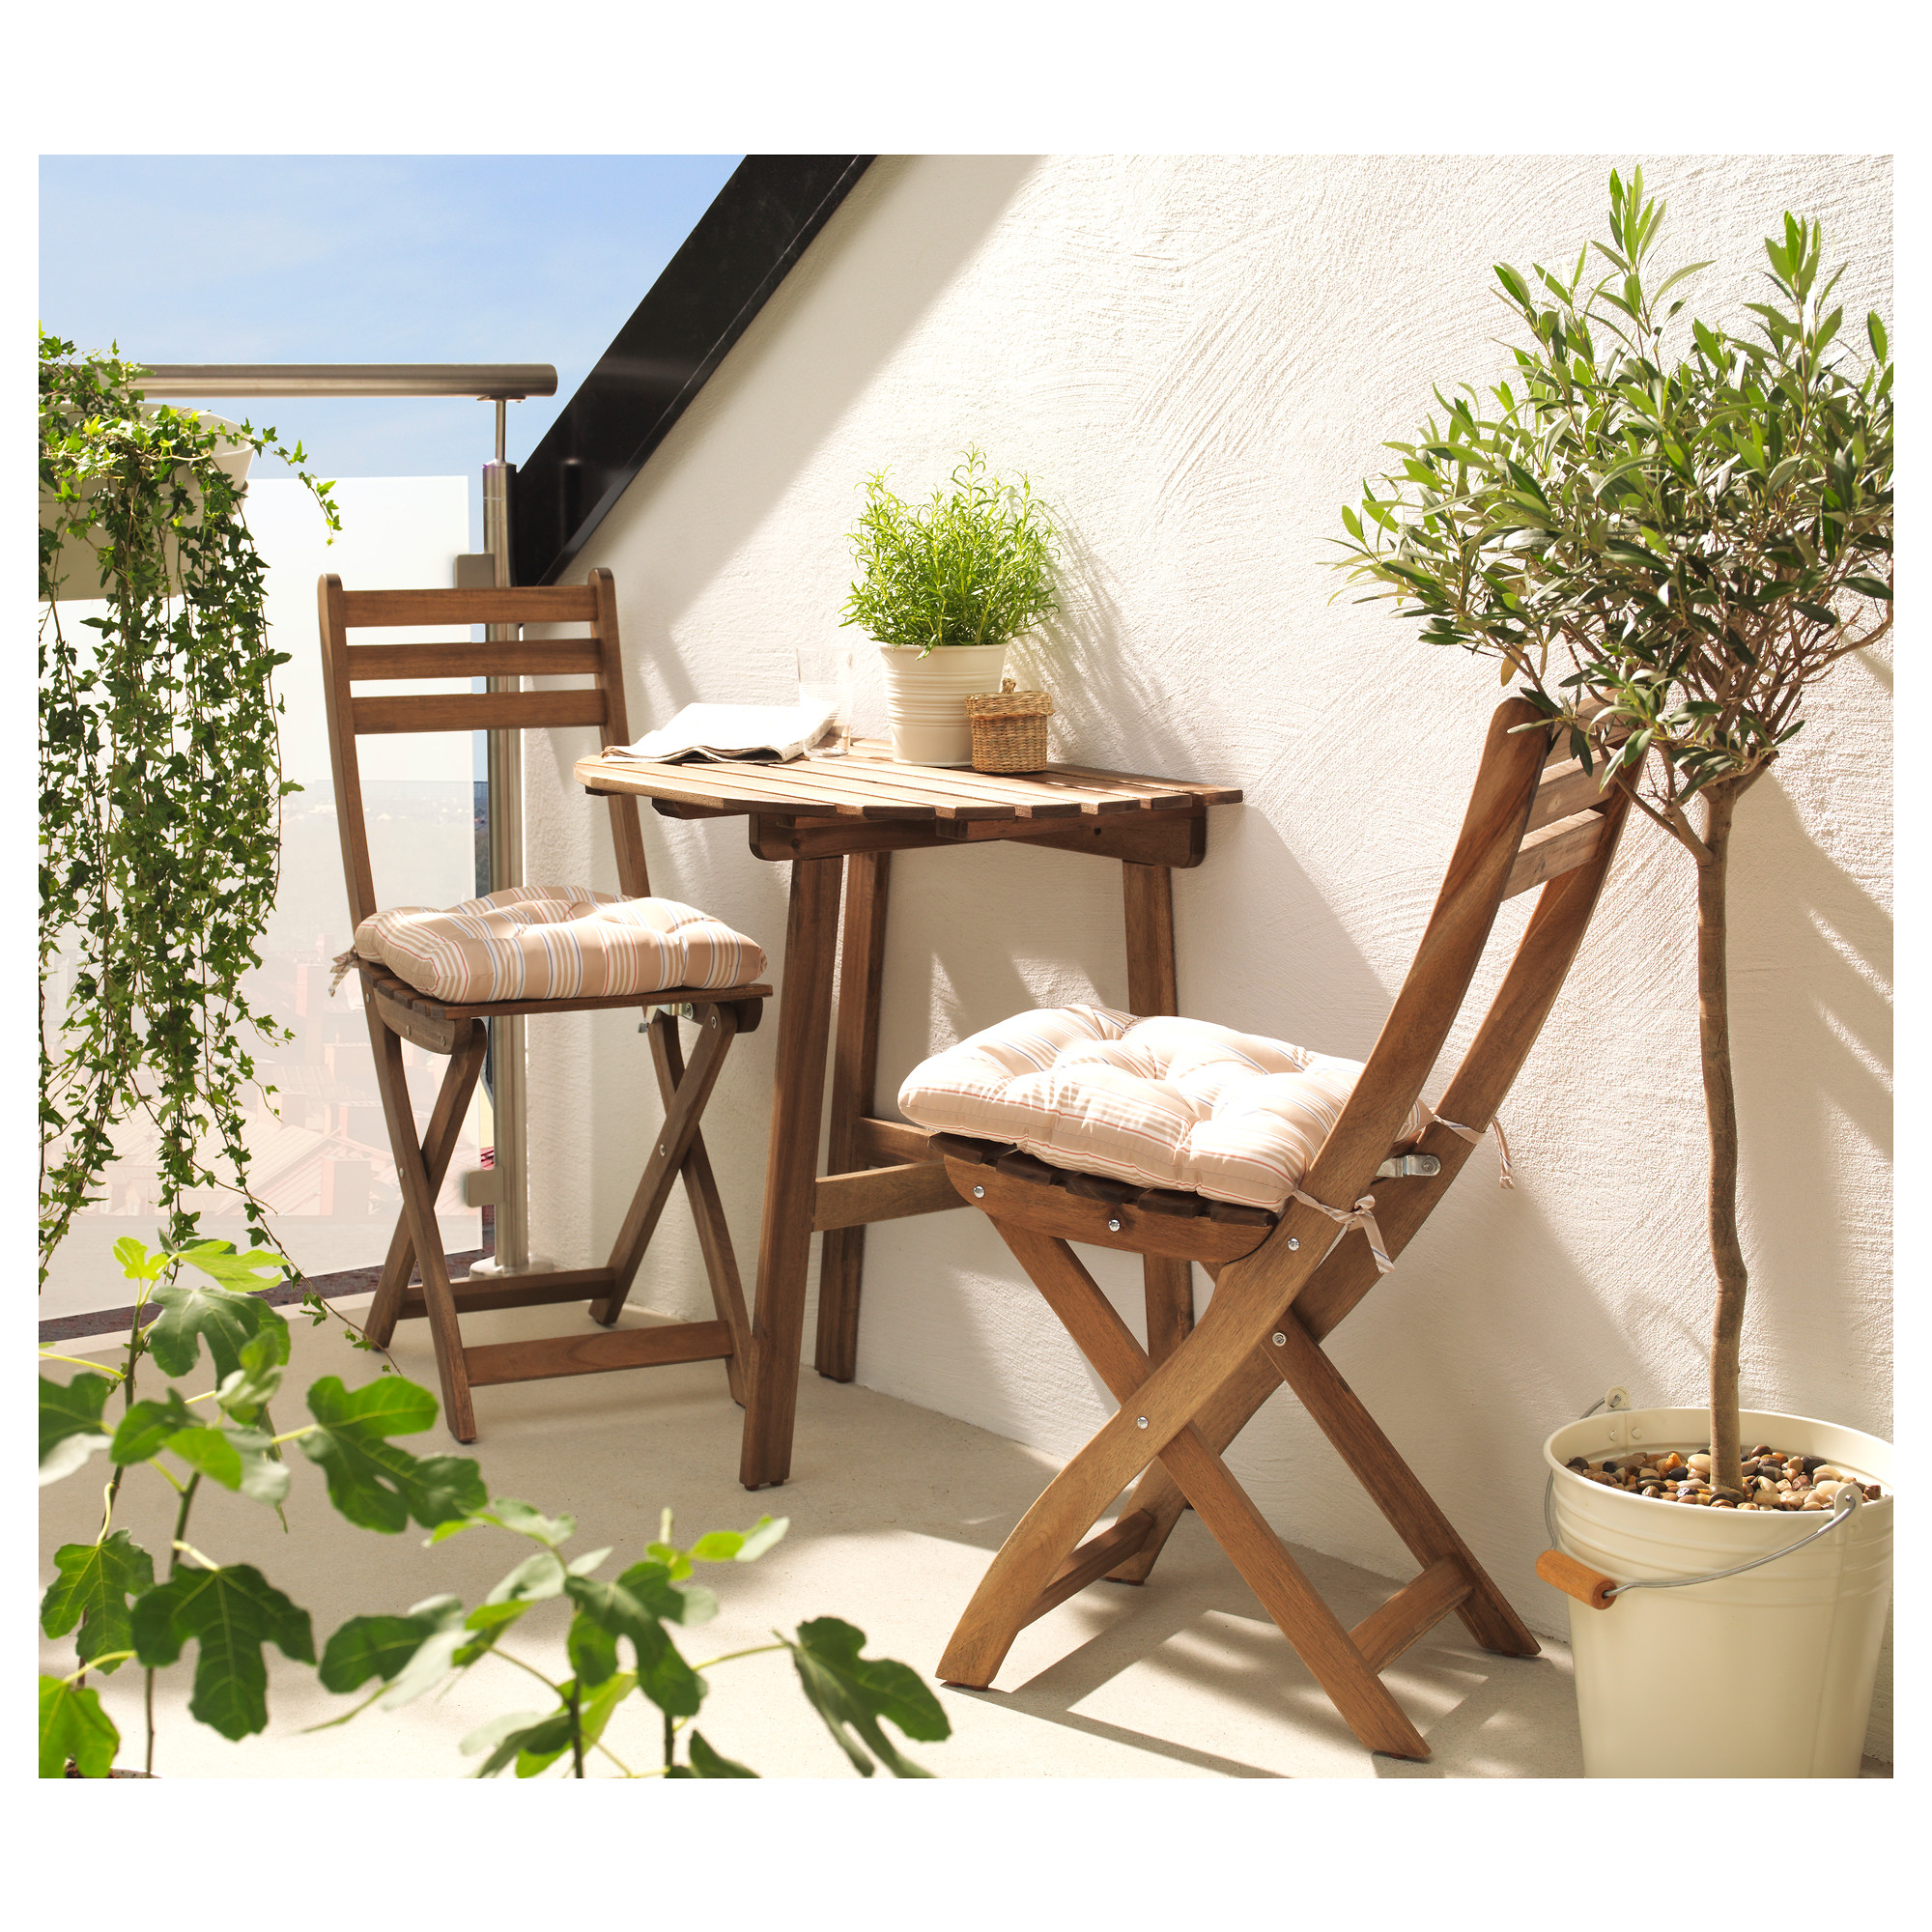 Small balcony dining set mikemie.